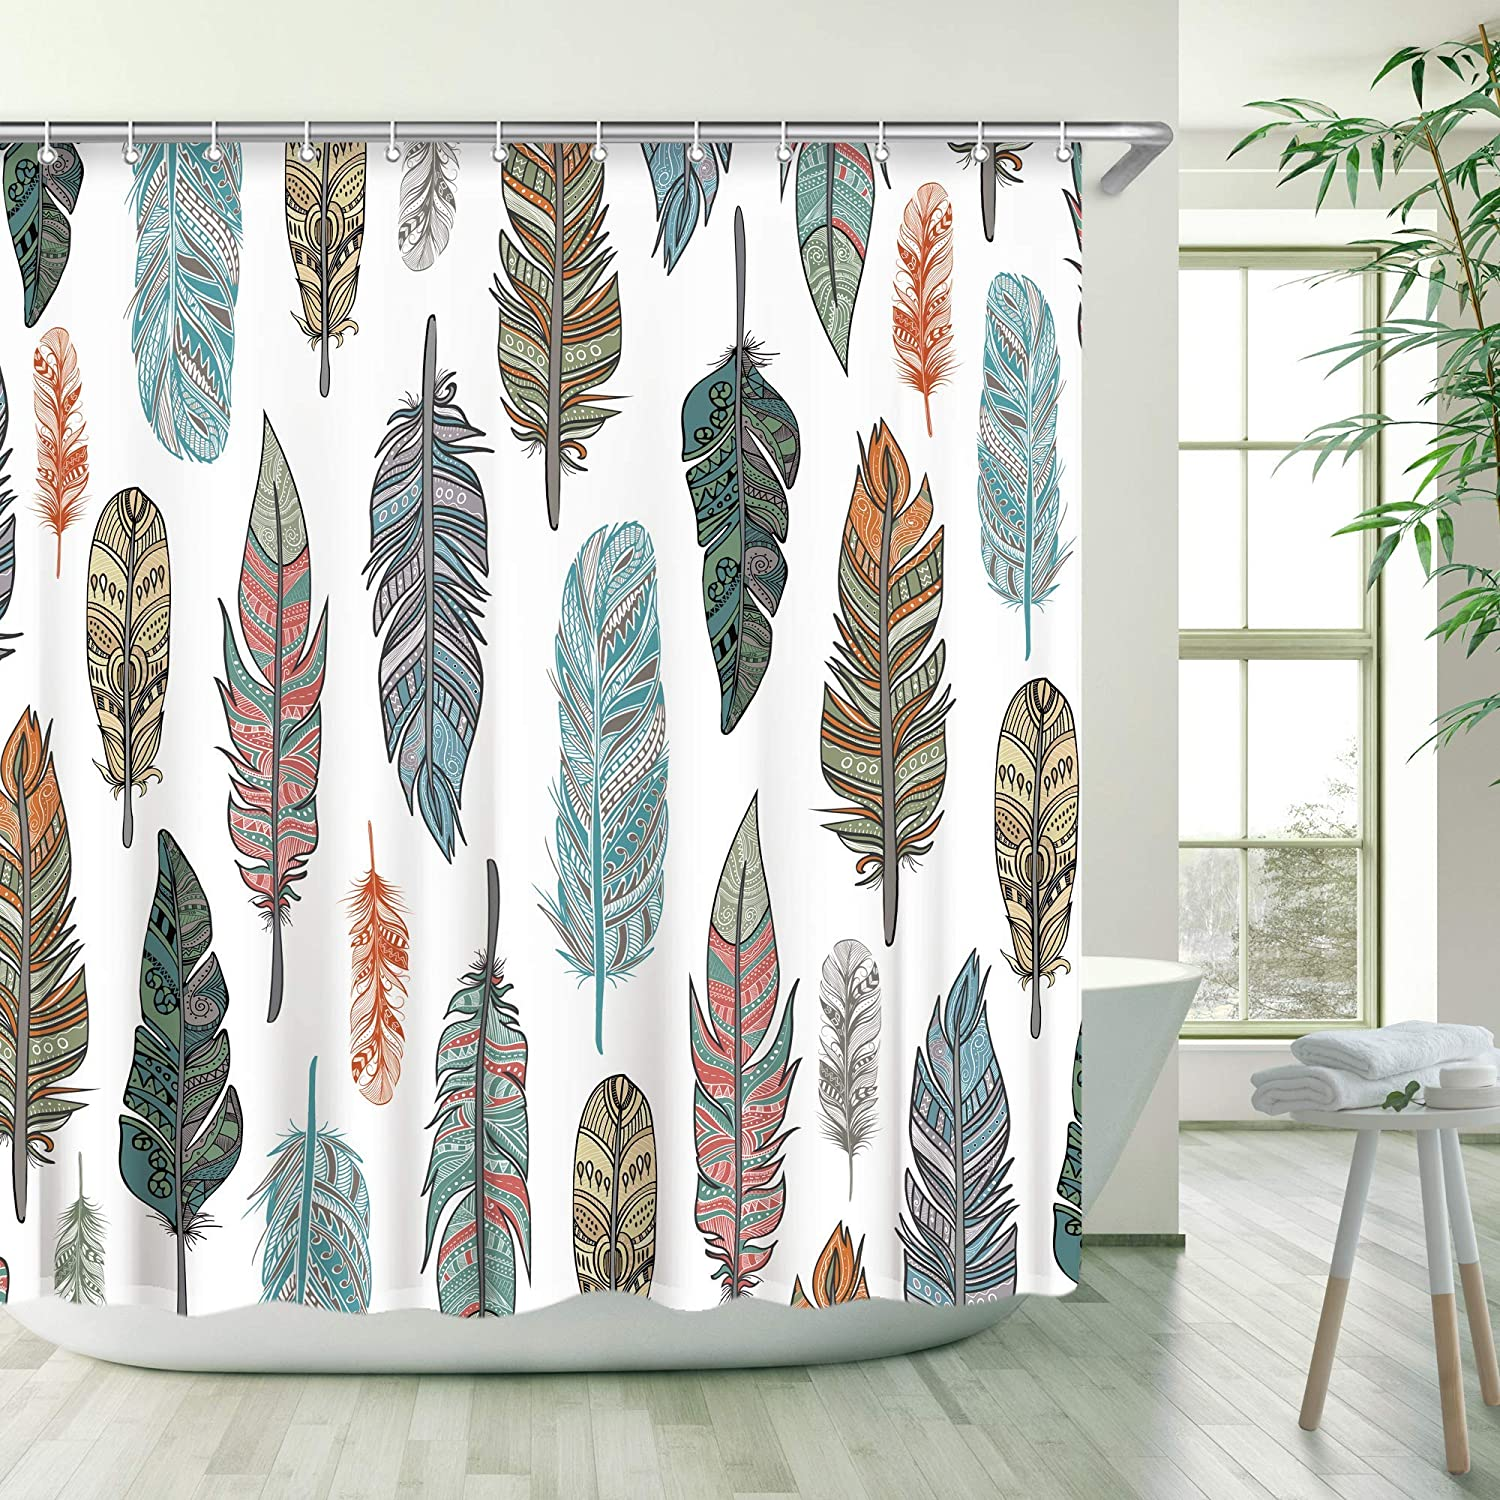 Stacy Fay Bird Feather Shower Curtain Animal Feather Shower Curtain Bird Shower Curtain with Hooks Colorful Feather Shower Curtain Bathroom Bird Feather